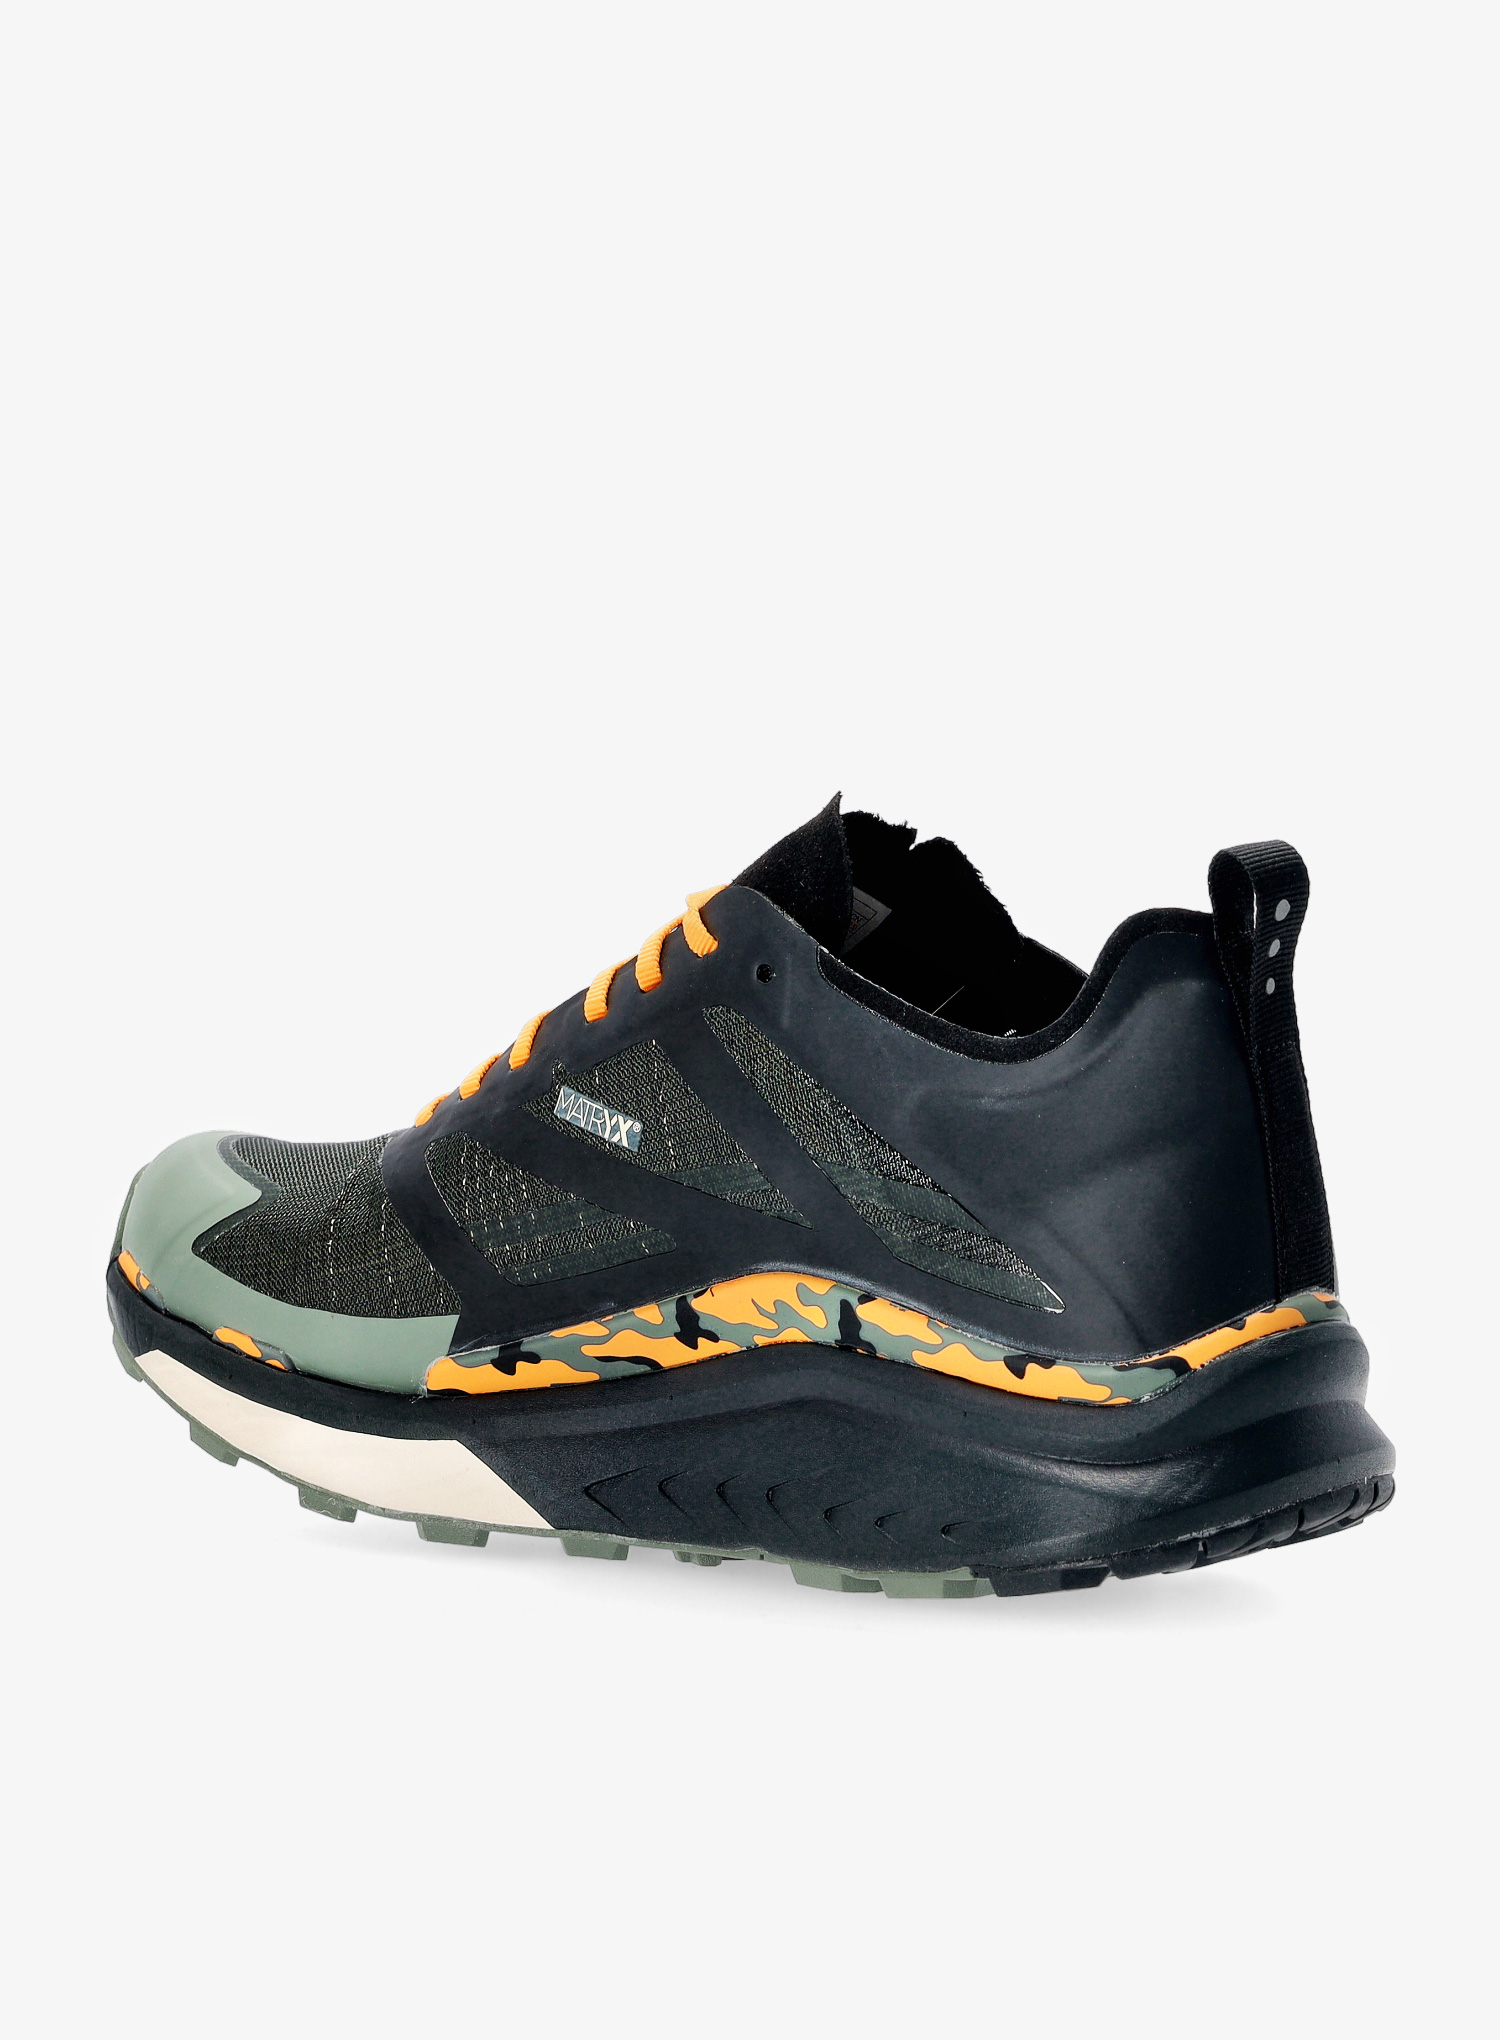 Buty trailowe The North Face Vectiv Infinite LTD - agave green/gold - zdjęcie nr. 8